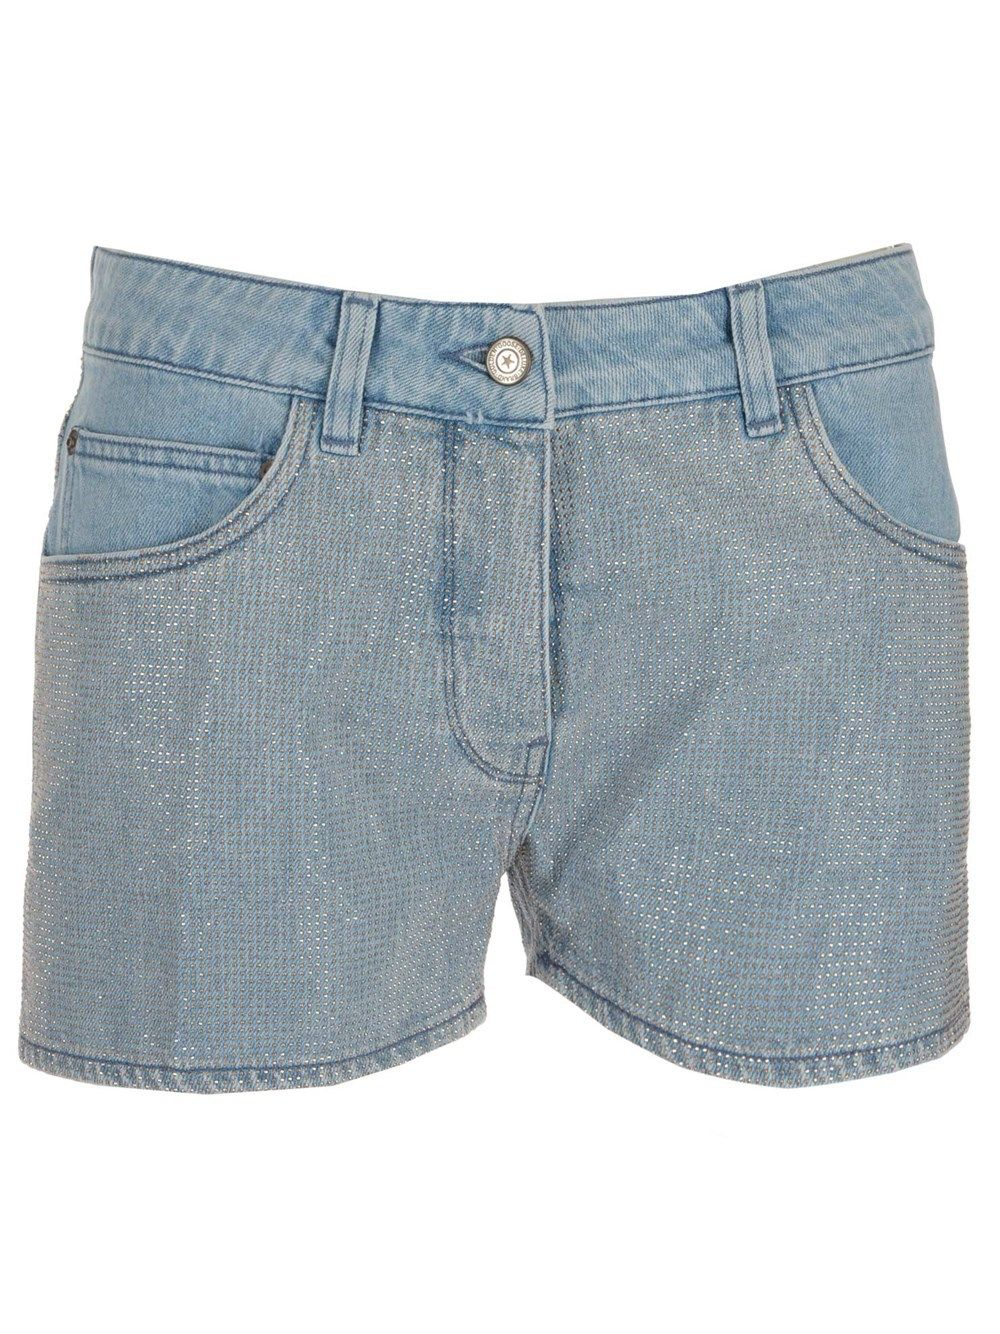 Golden Goose GOLDEN GOOSE WOMEN'S BLUE COTTON SHORTS